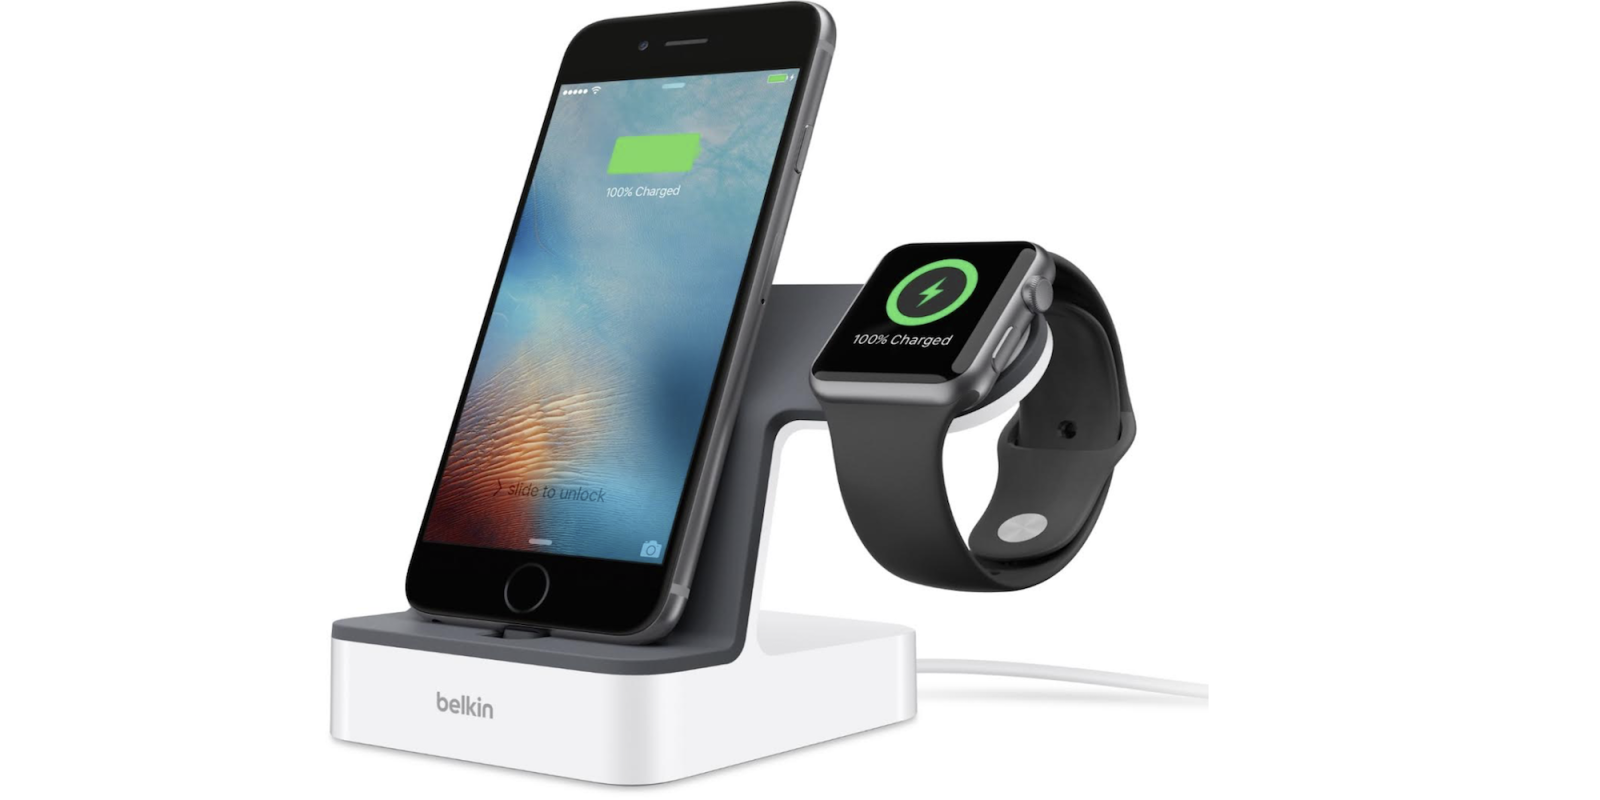 belkin iphone charger review belkin powerhouse apple and iphone charger dock 13566